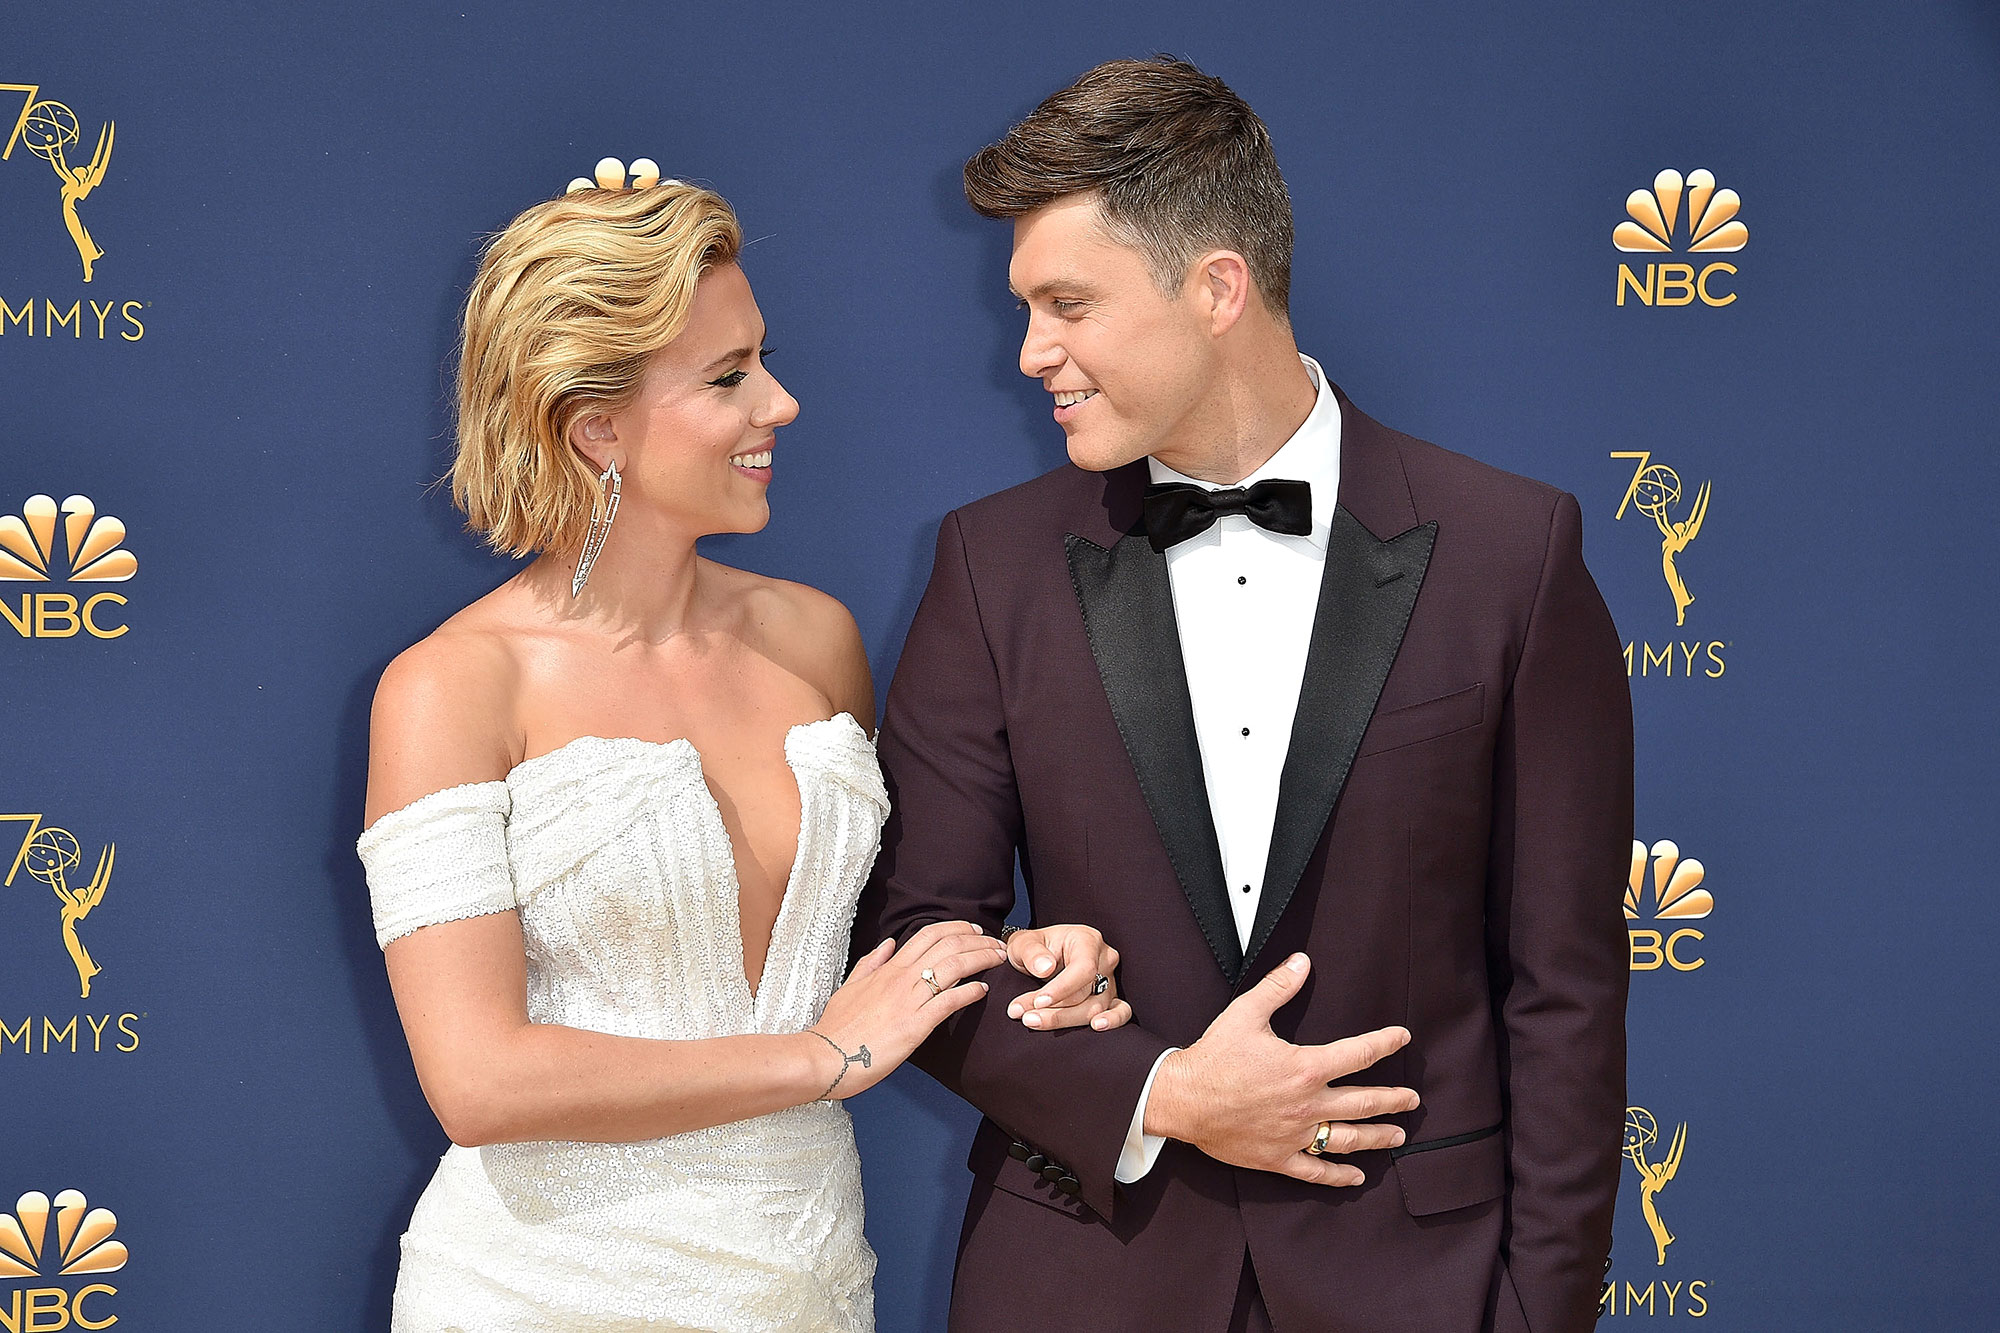 Colin Jost Who? Scarlett Johansson Jokes She's Dating Her Doorman - Scarlett Johansson and Colin Jost attend the 70th Emmy Awards – Arrivals at Microsoft Theater on September 17, 2018 in Los Angeles, California.